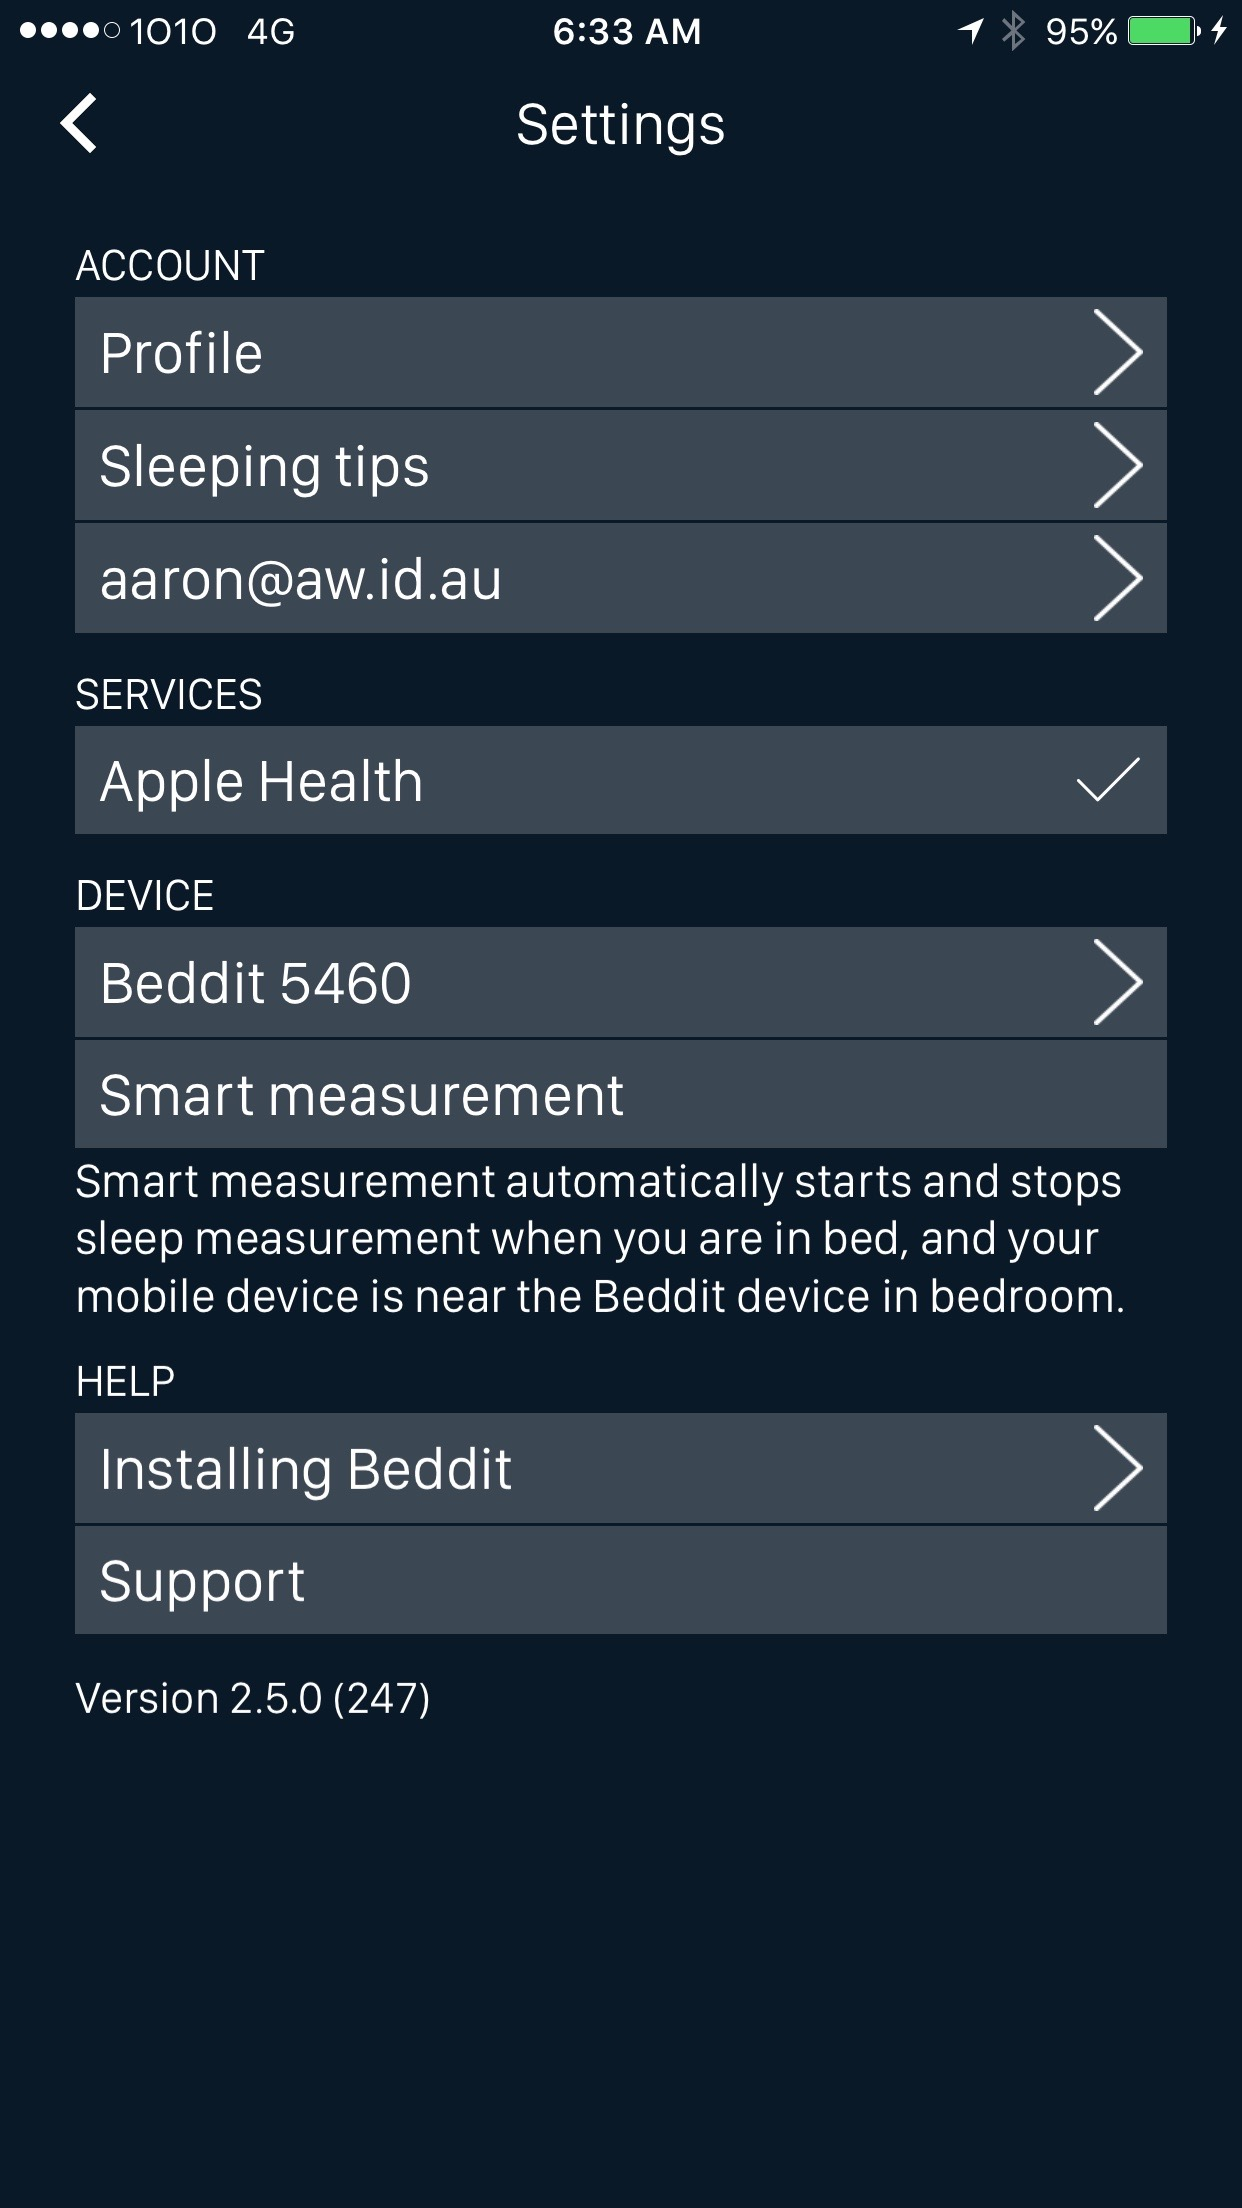 13 - Beedit Mobile Dashboard